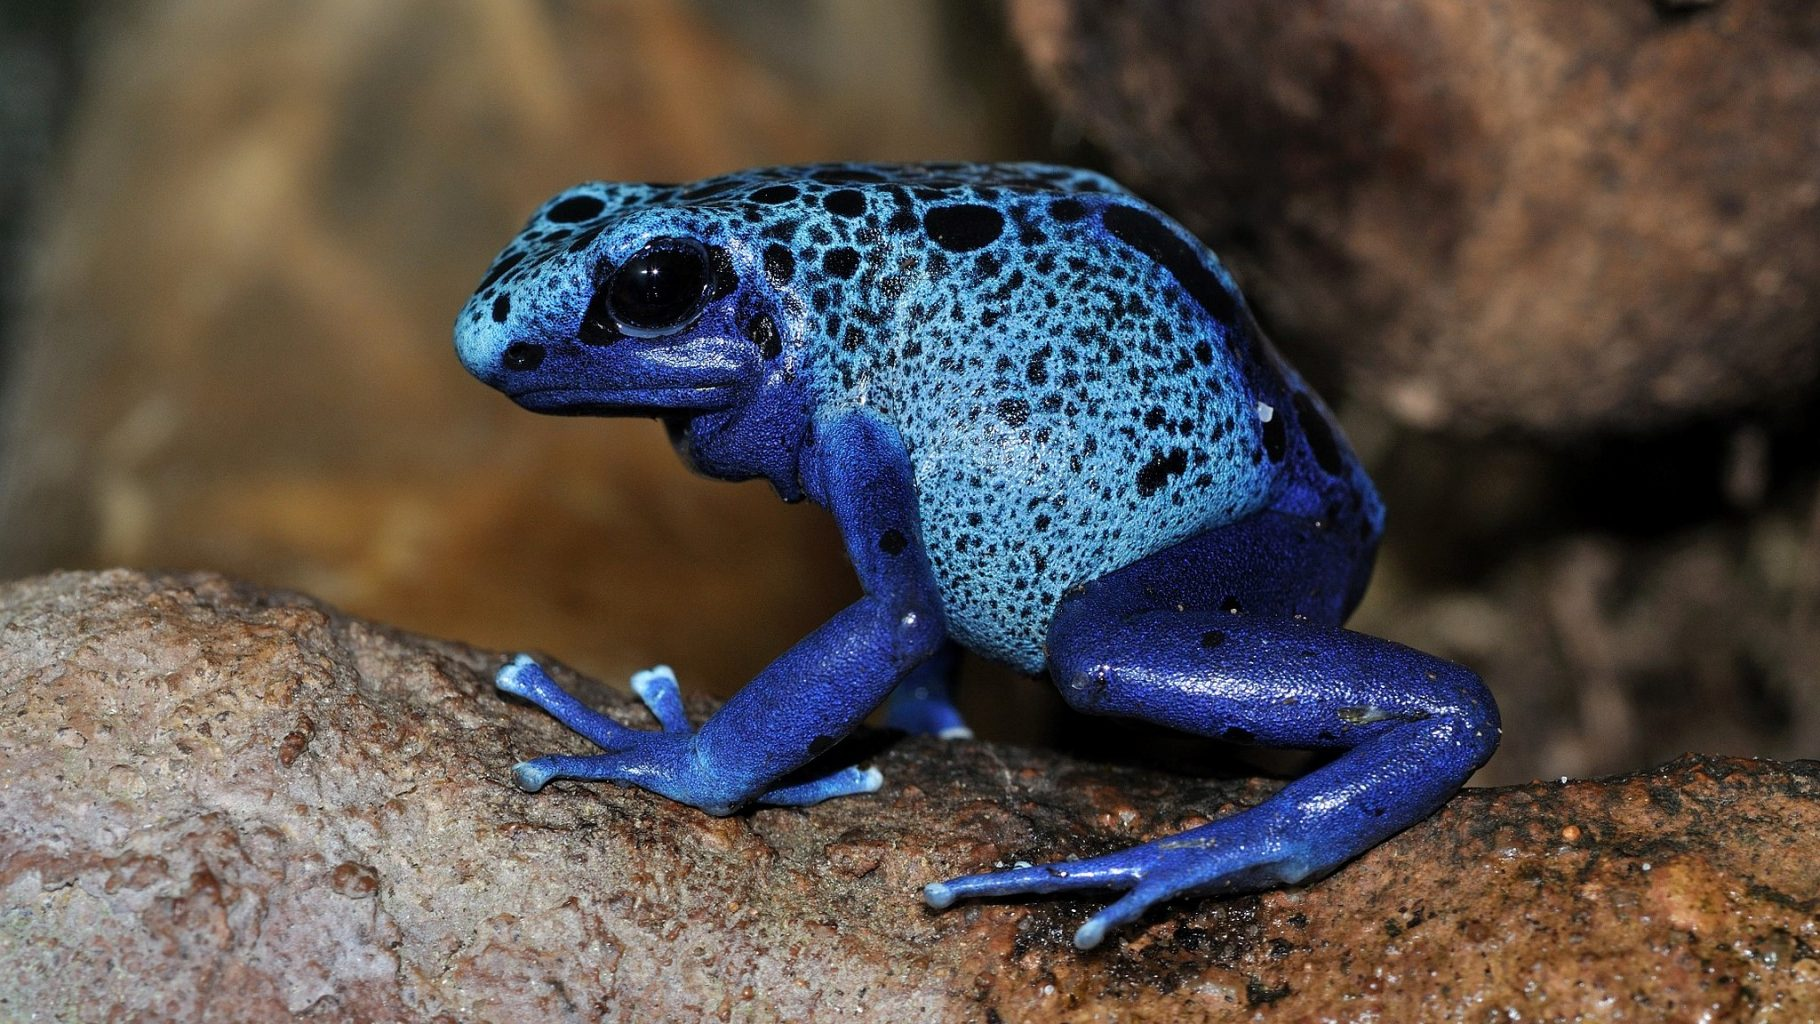 Image: One of the nost famous poisonous animals: the blue poison dart frog